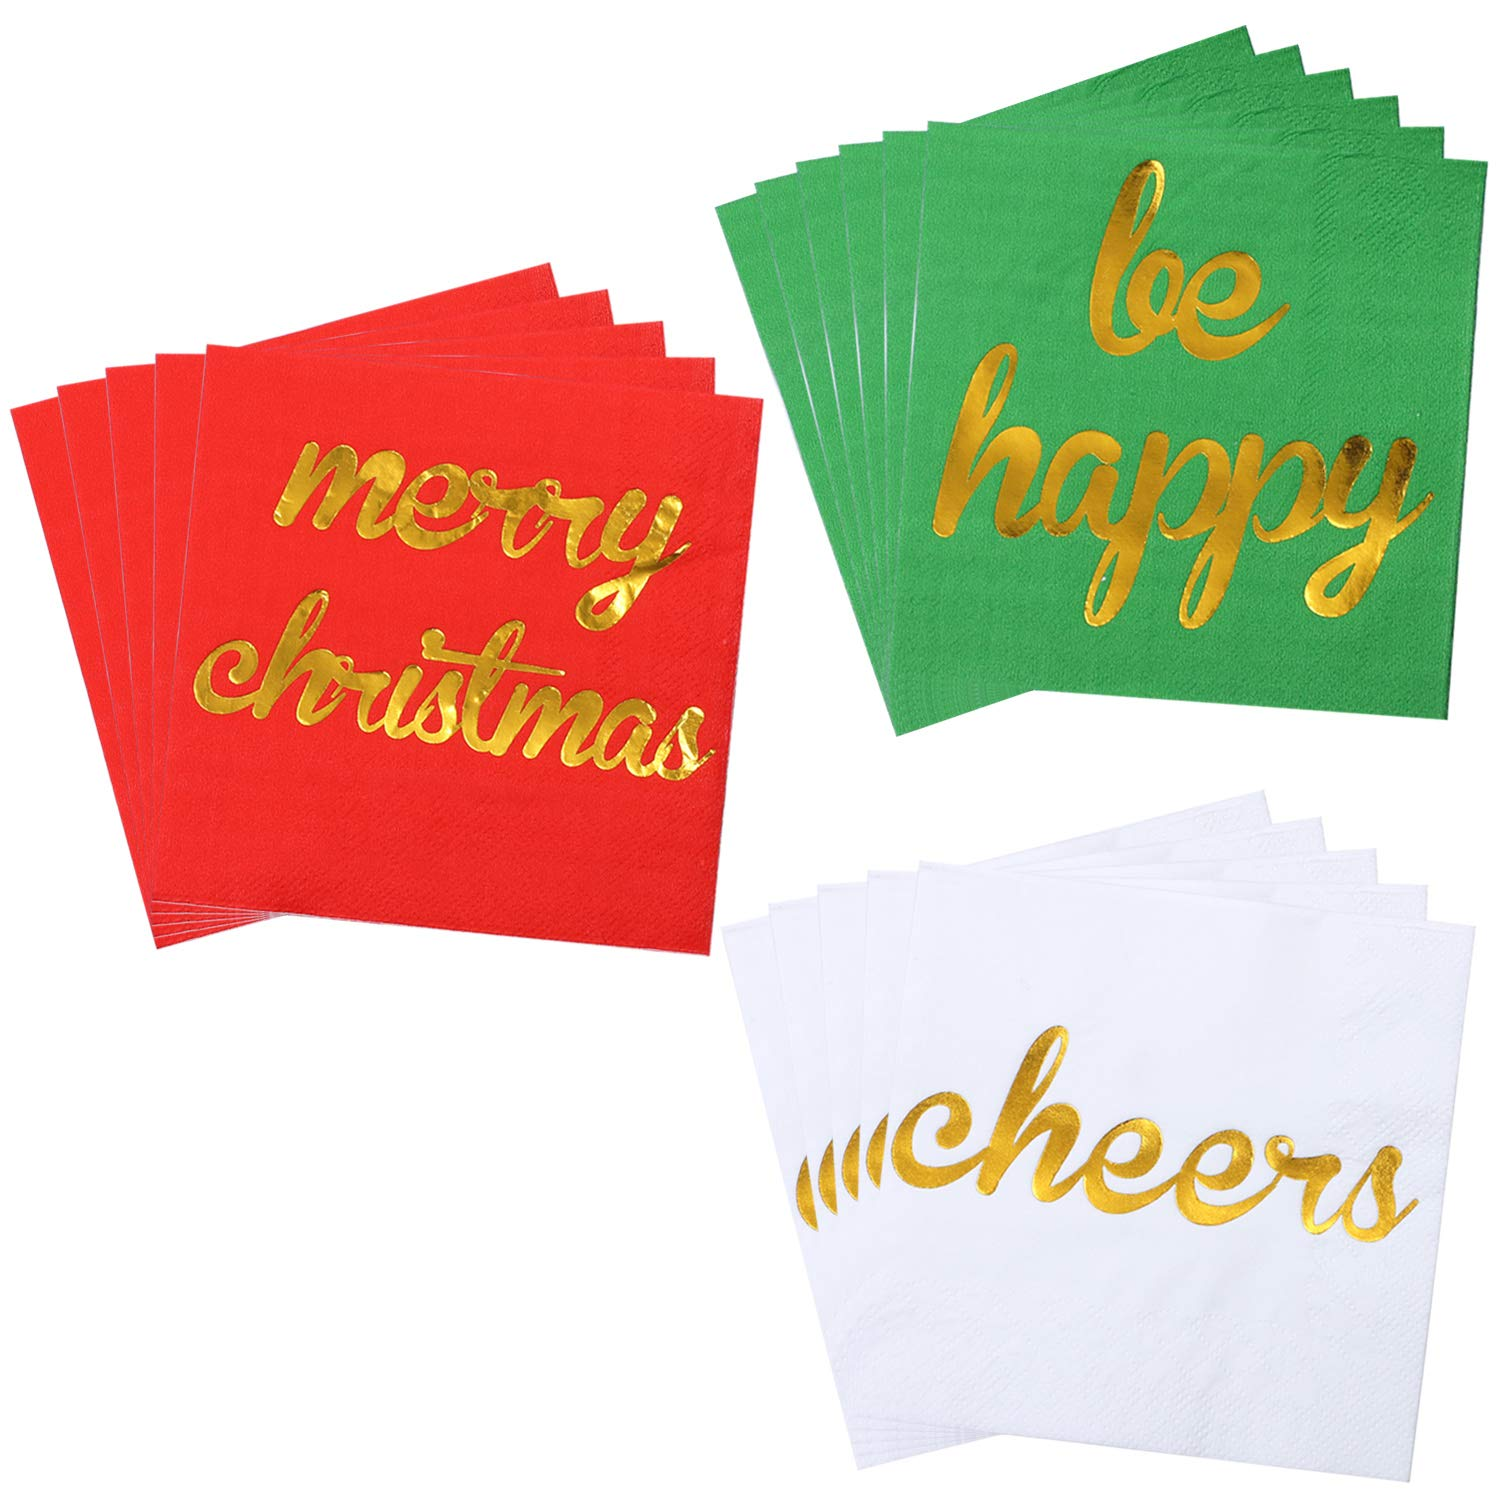 Green and White Paper Napkins for Christmas Holidays Dinner Party Supplies with 2 Layers 5 by 5 Inches Aneco 120 Pack Christmas Cocktail Napkins with Gold Foil Design Beverage Cocktail Napkins Red